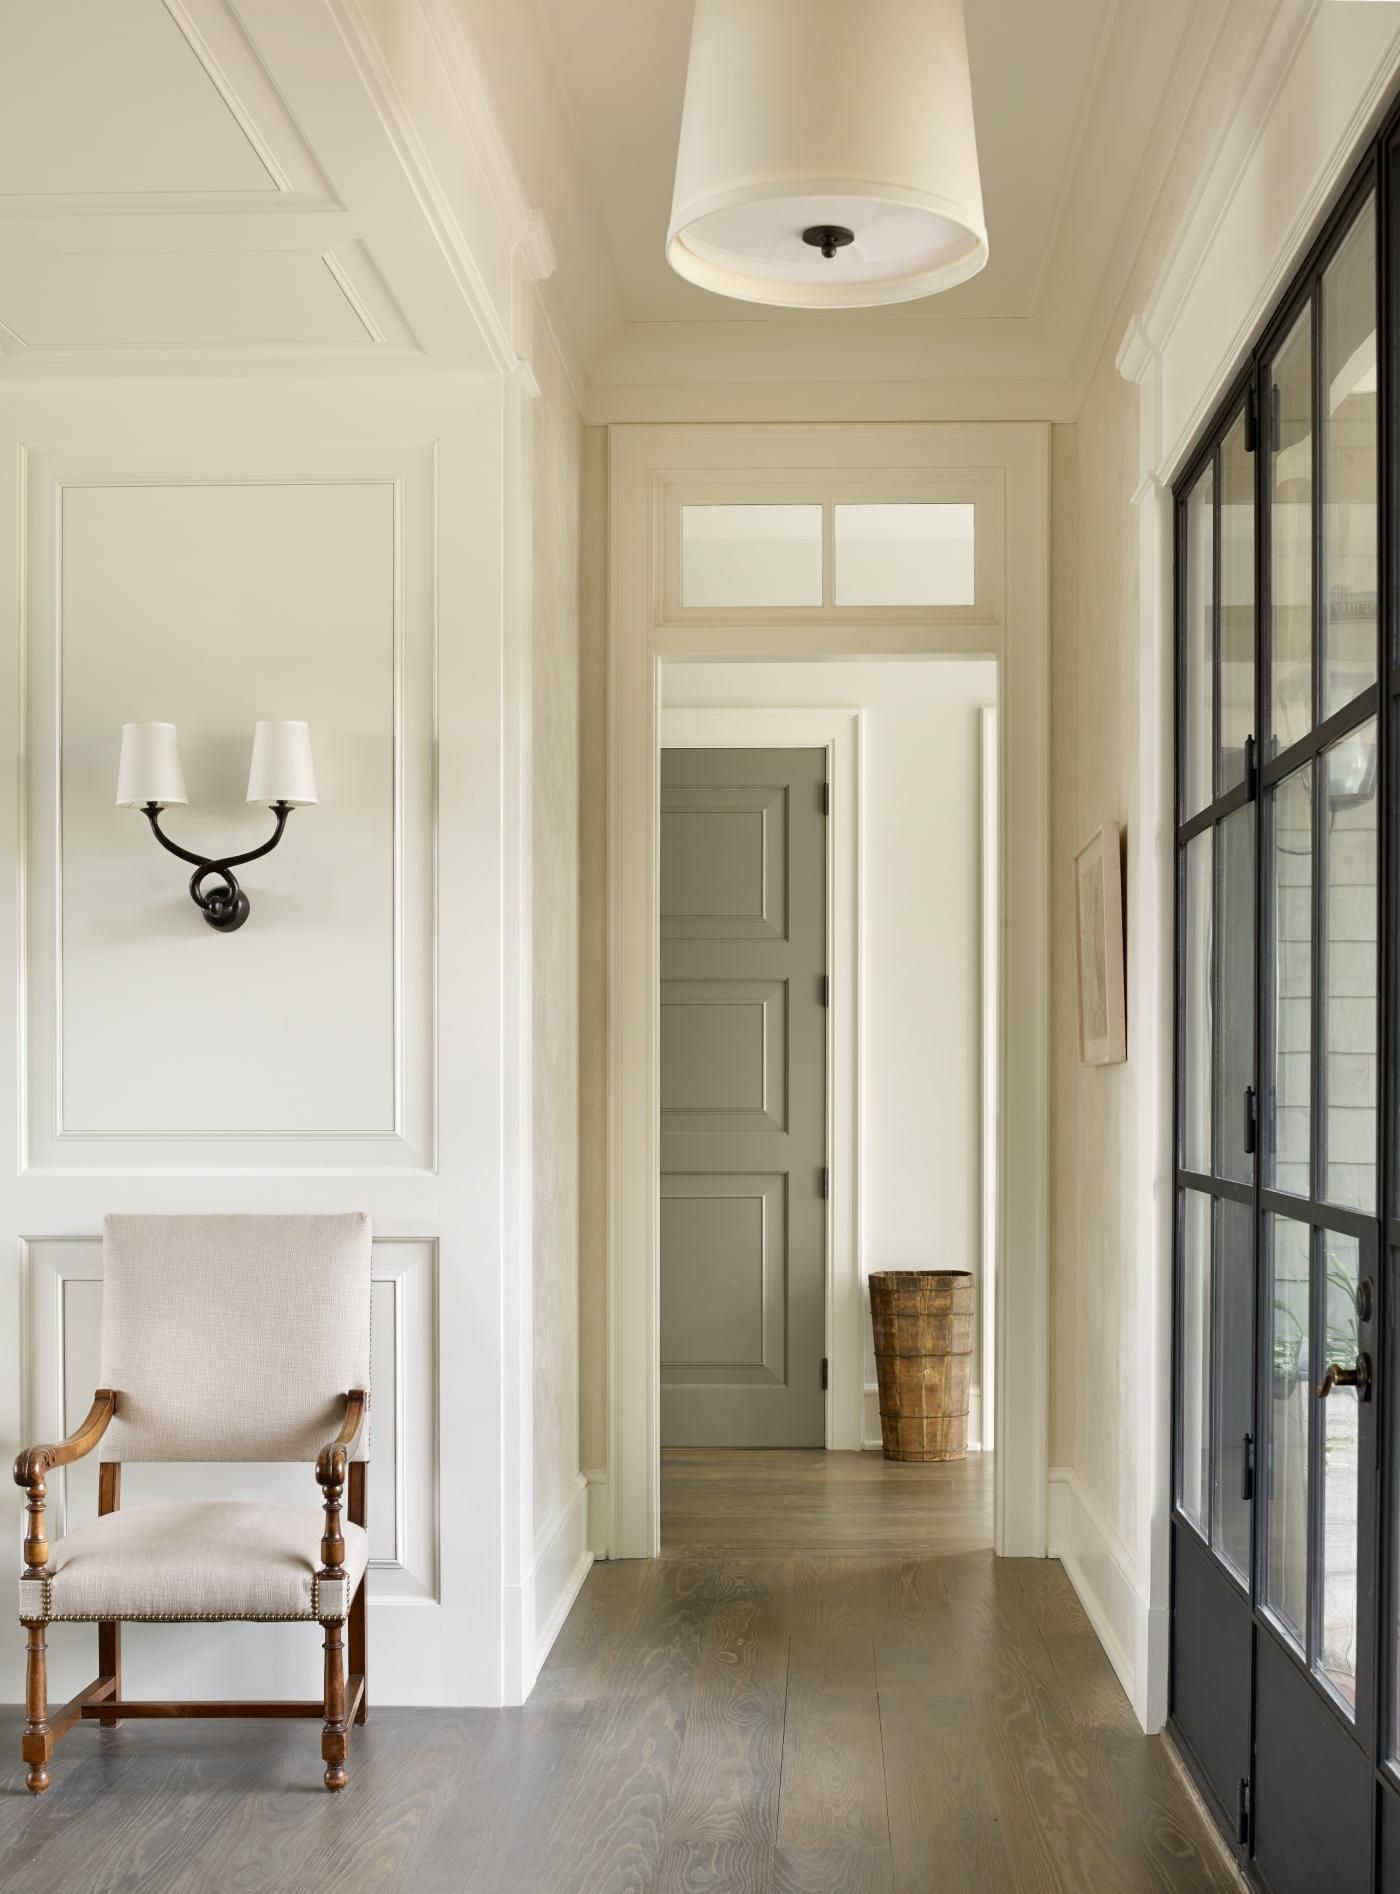 timeless style in kiawah by beth webb interiors incollect interior rooms i admire. Black Bedroom Furniture Sets. Home Design Ideas